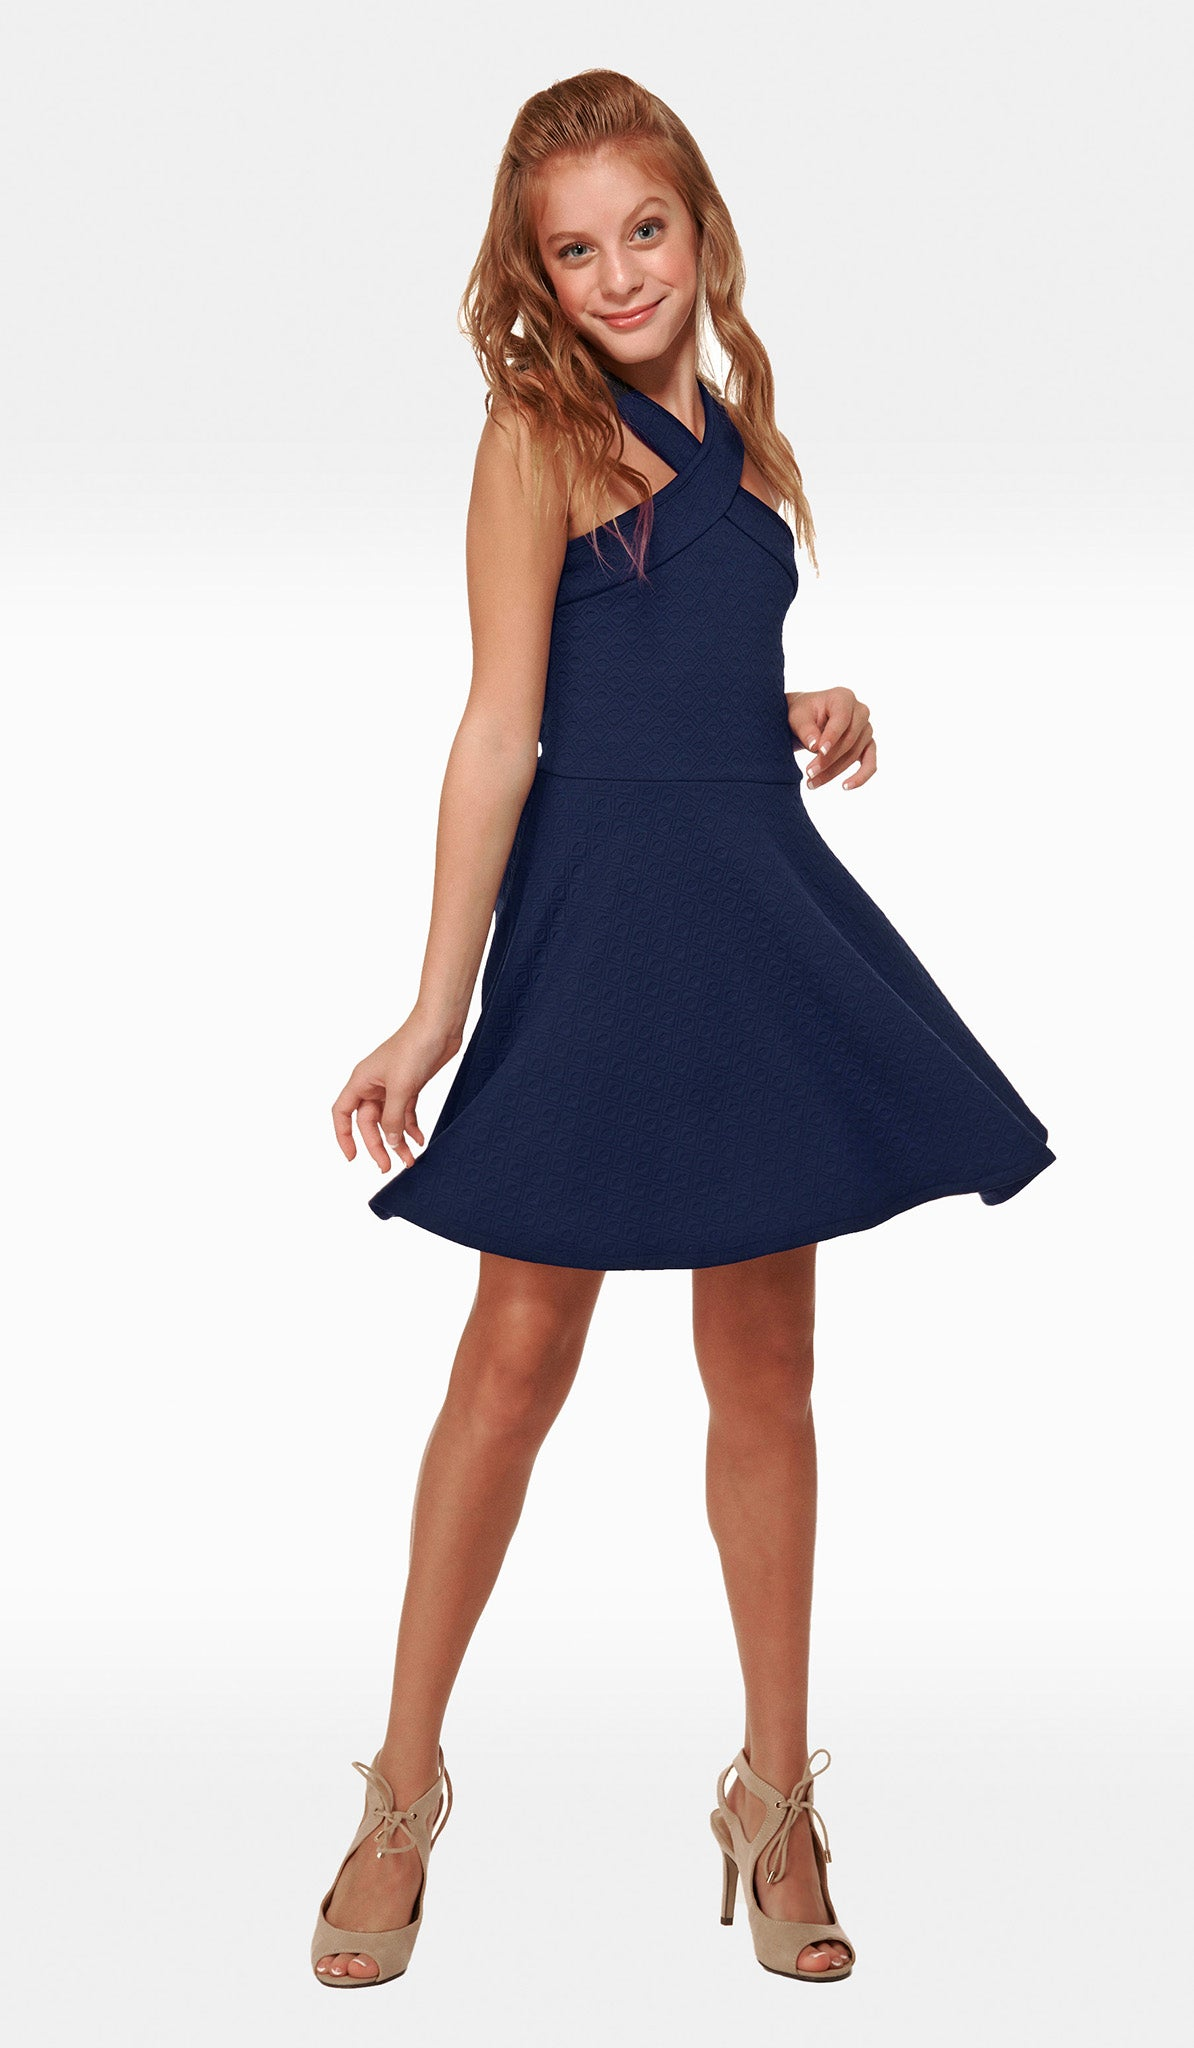 THE TRACIE DRESS - Sallymiller.com - [variant title] - | Event & Party Dresses for Tween Girls & Juniors | Weddings Dresses, Bat Mitzvah Dresses, Sweet Sixteen Dresses, Graduation Dresses, Birthday Party Dresses, Bar Mitzvah Dresses, Cotillion Dresses